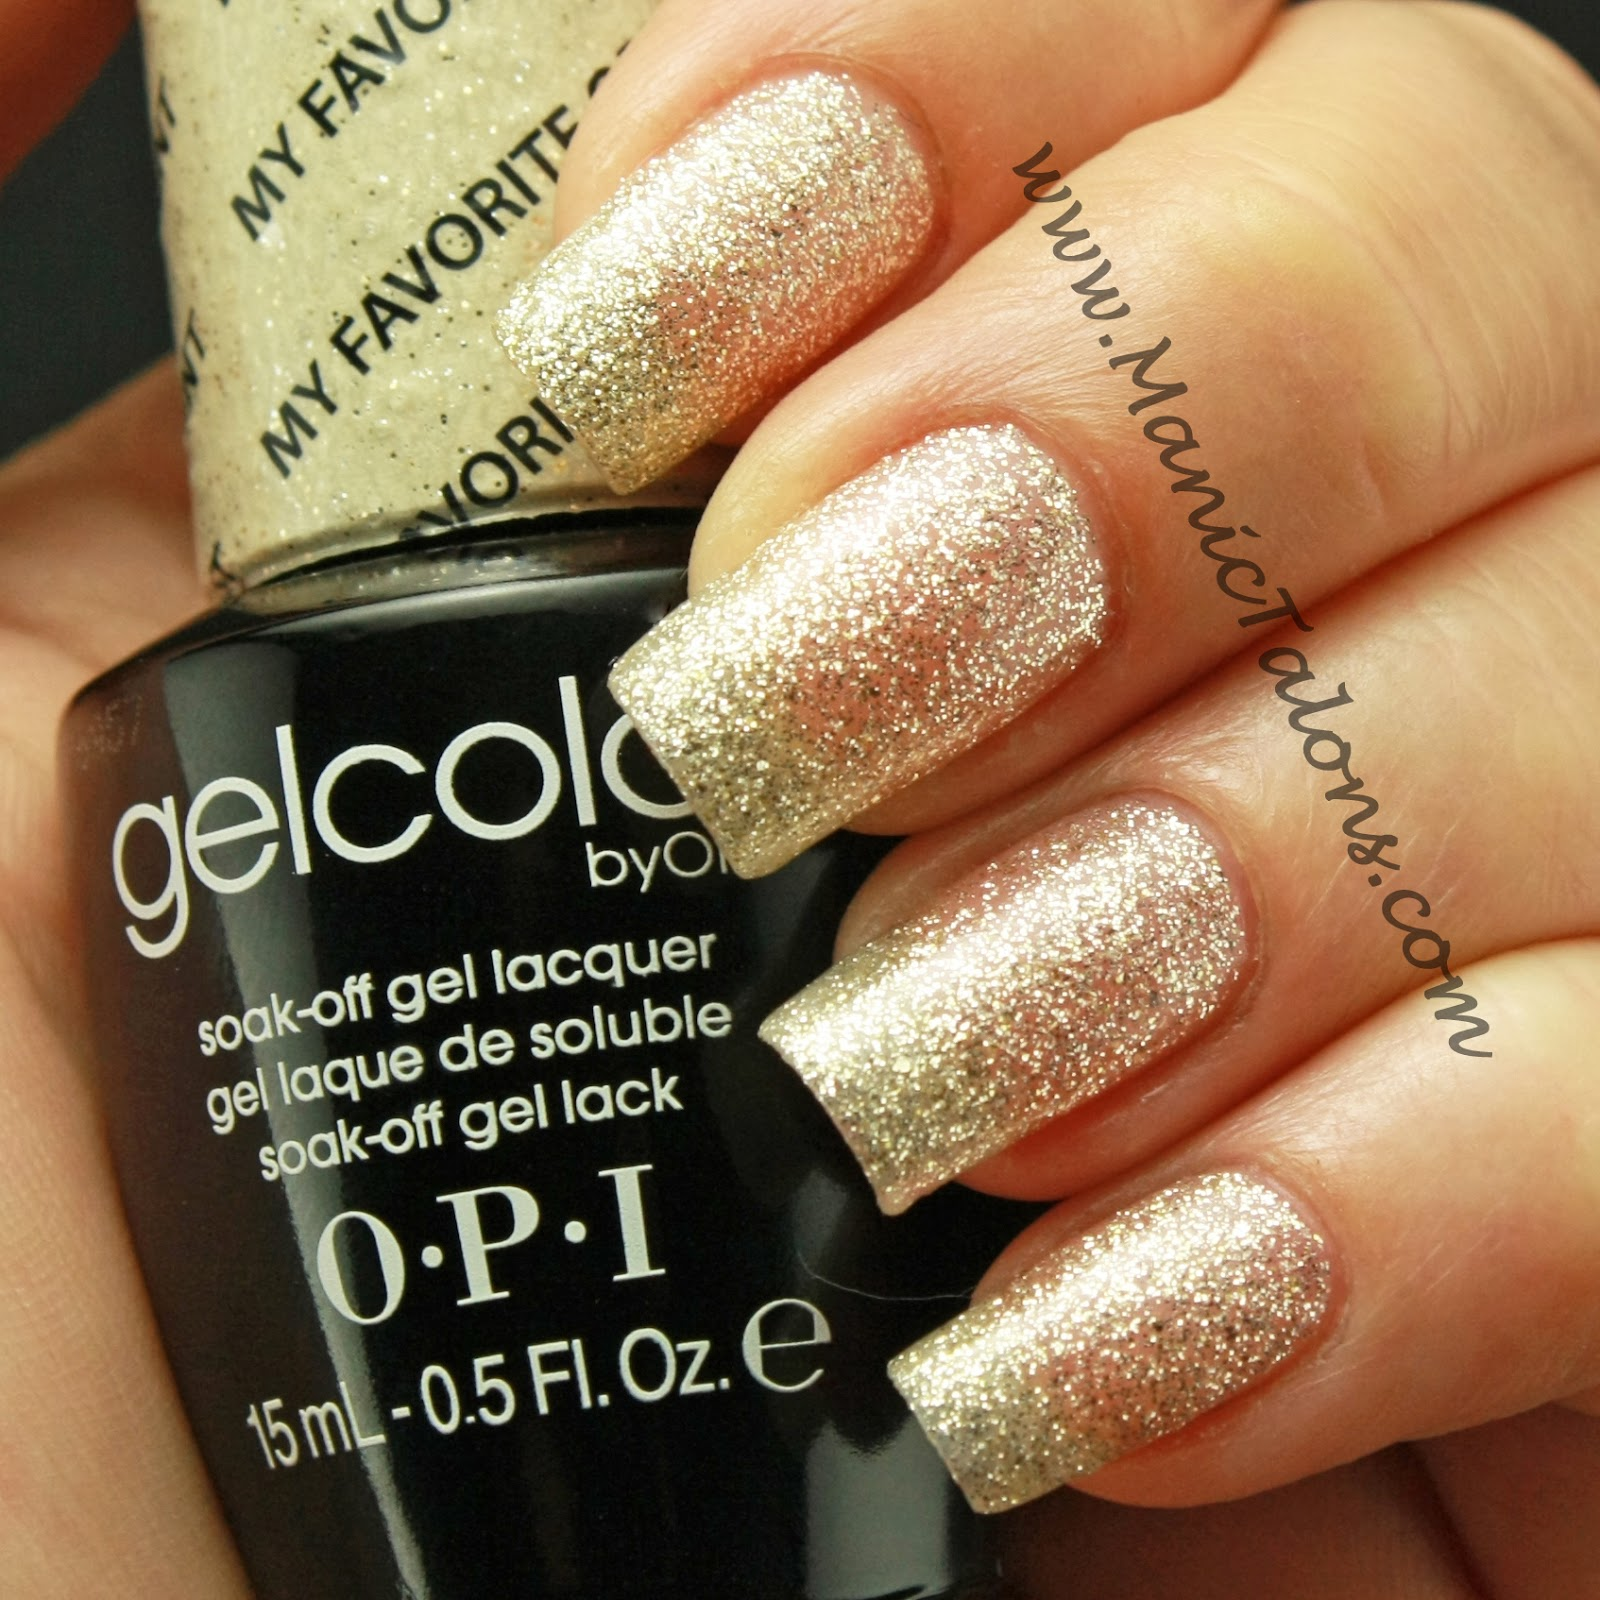 Manic Talons Nail Design: OPI GelColor: Random swatches